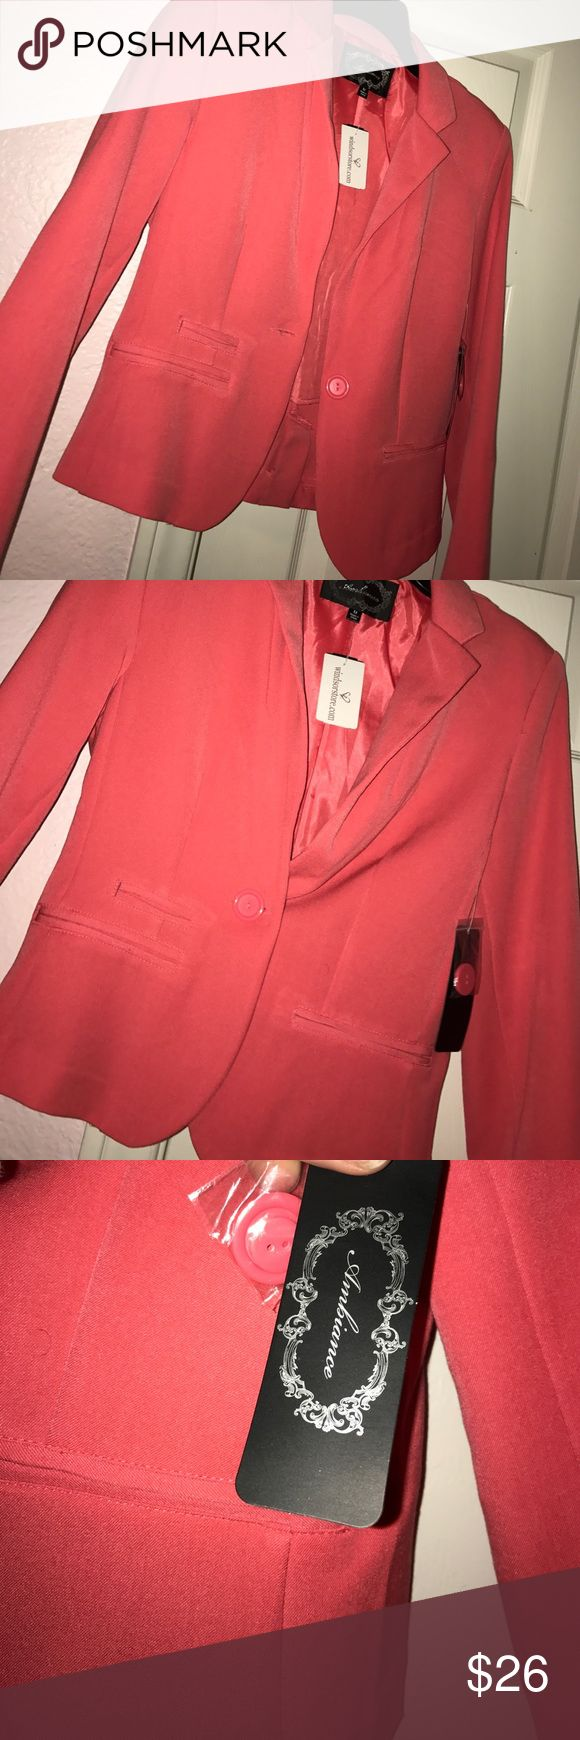 Pink blazer New with tag! Cute hot pink blazer and it's still very businesslike WINDSOR Jackets & Coats Blazers